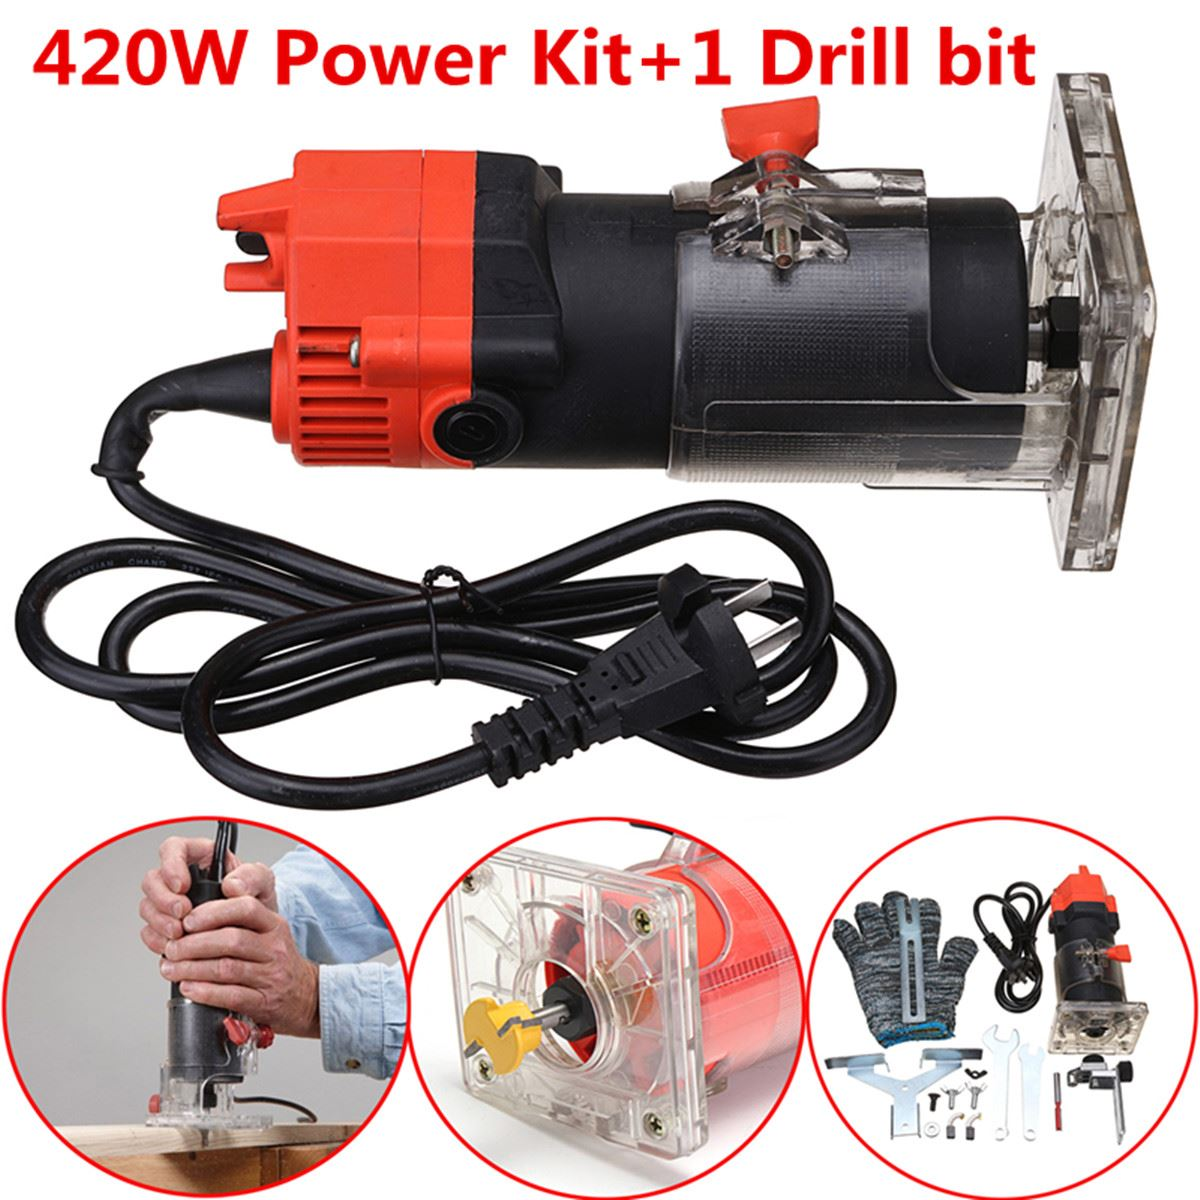 420W 220V Electric Edge Trimmer 30000RPM Multi Function Woodworking Machine Wood Edge Cutter/Router Set + Wrench Gloves cukyi household electric multi function cooker 220v stainless steel colorful stew cook steam machine 5 in 1